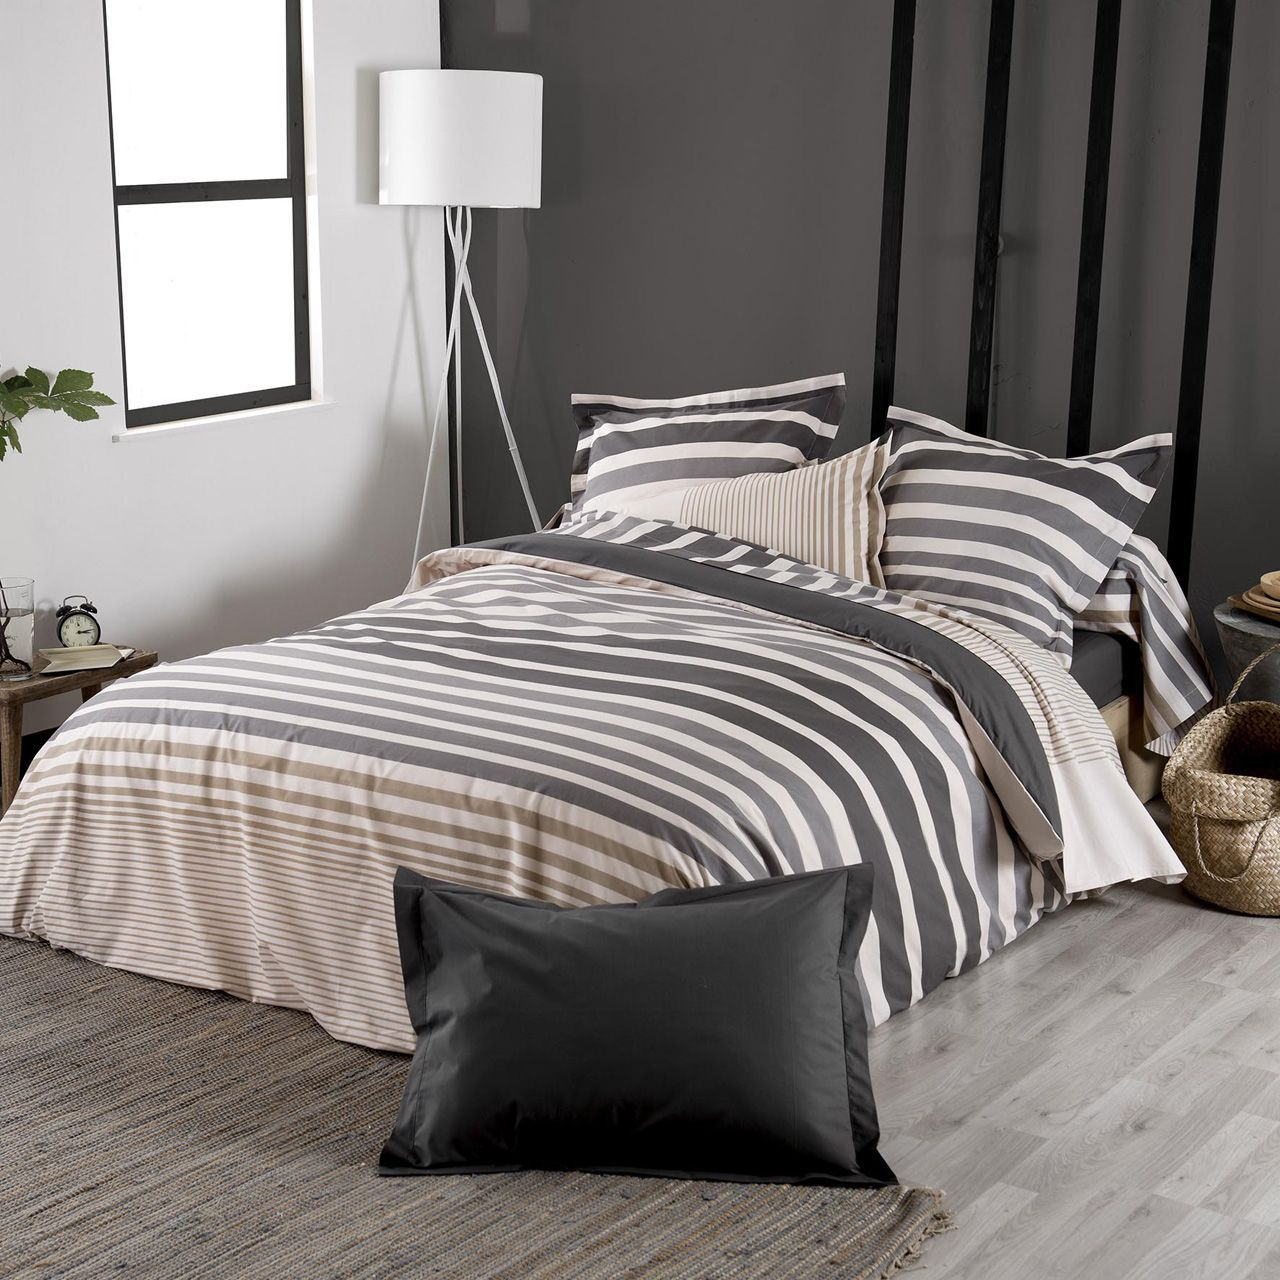 taie de traversin stripe rayures ficelle percale 43x140 tradilinge. Black Bedroom Furniture Sets. Home Design Ideas